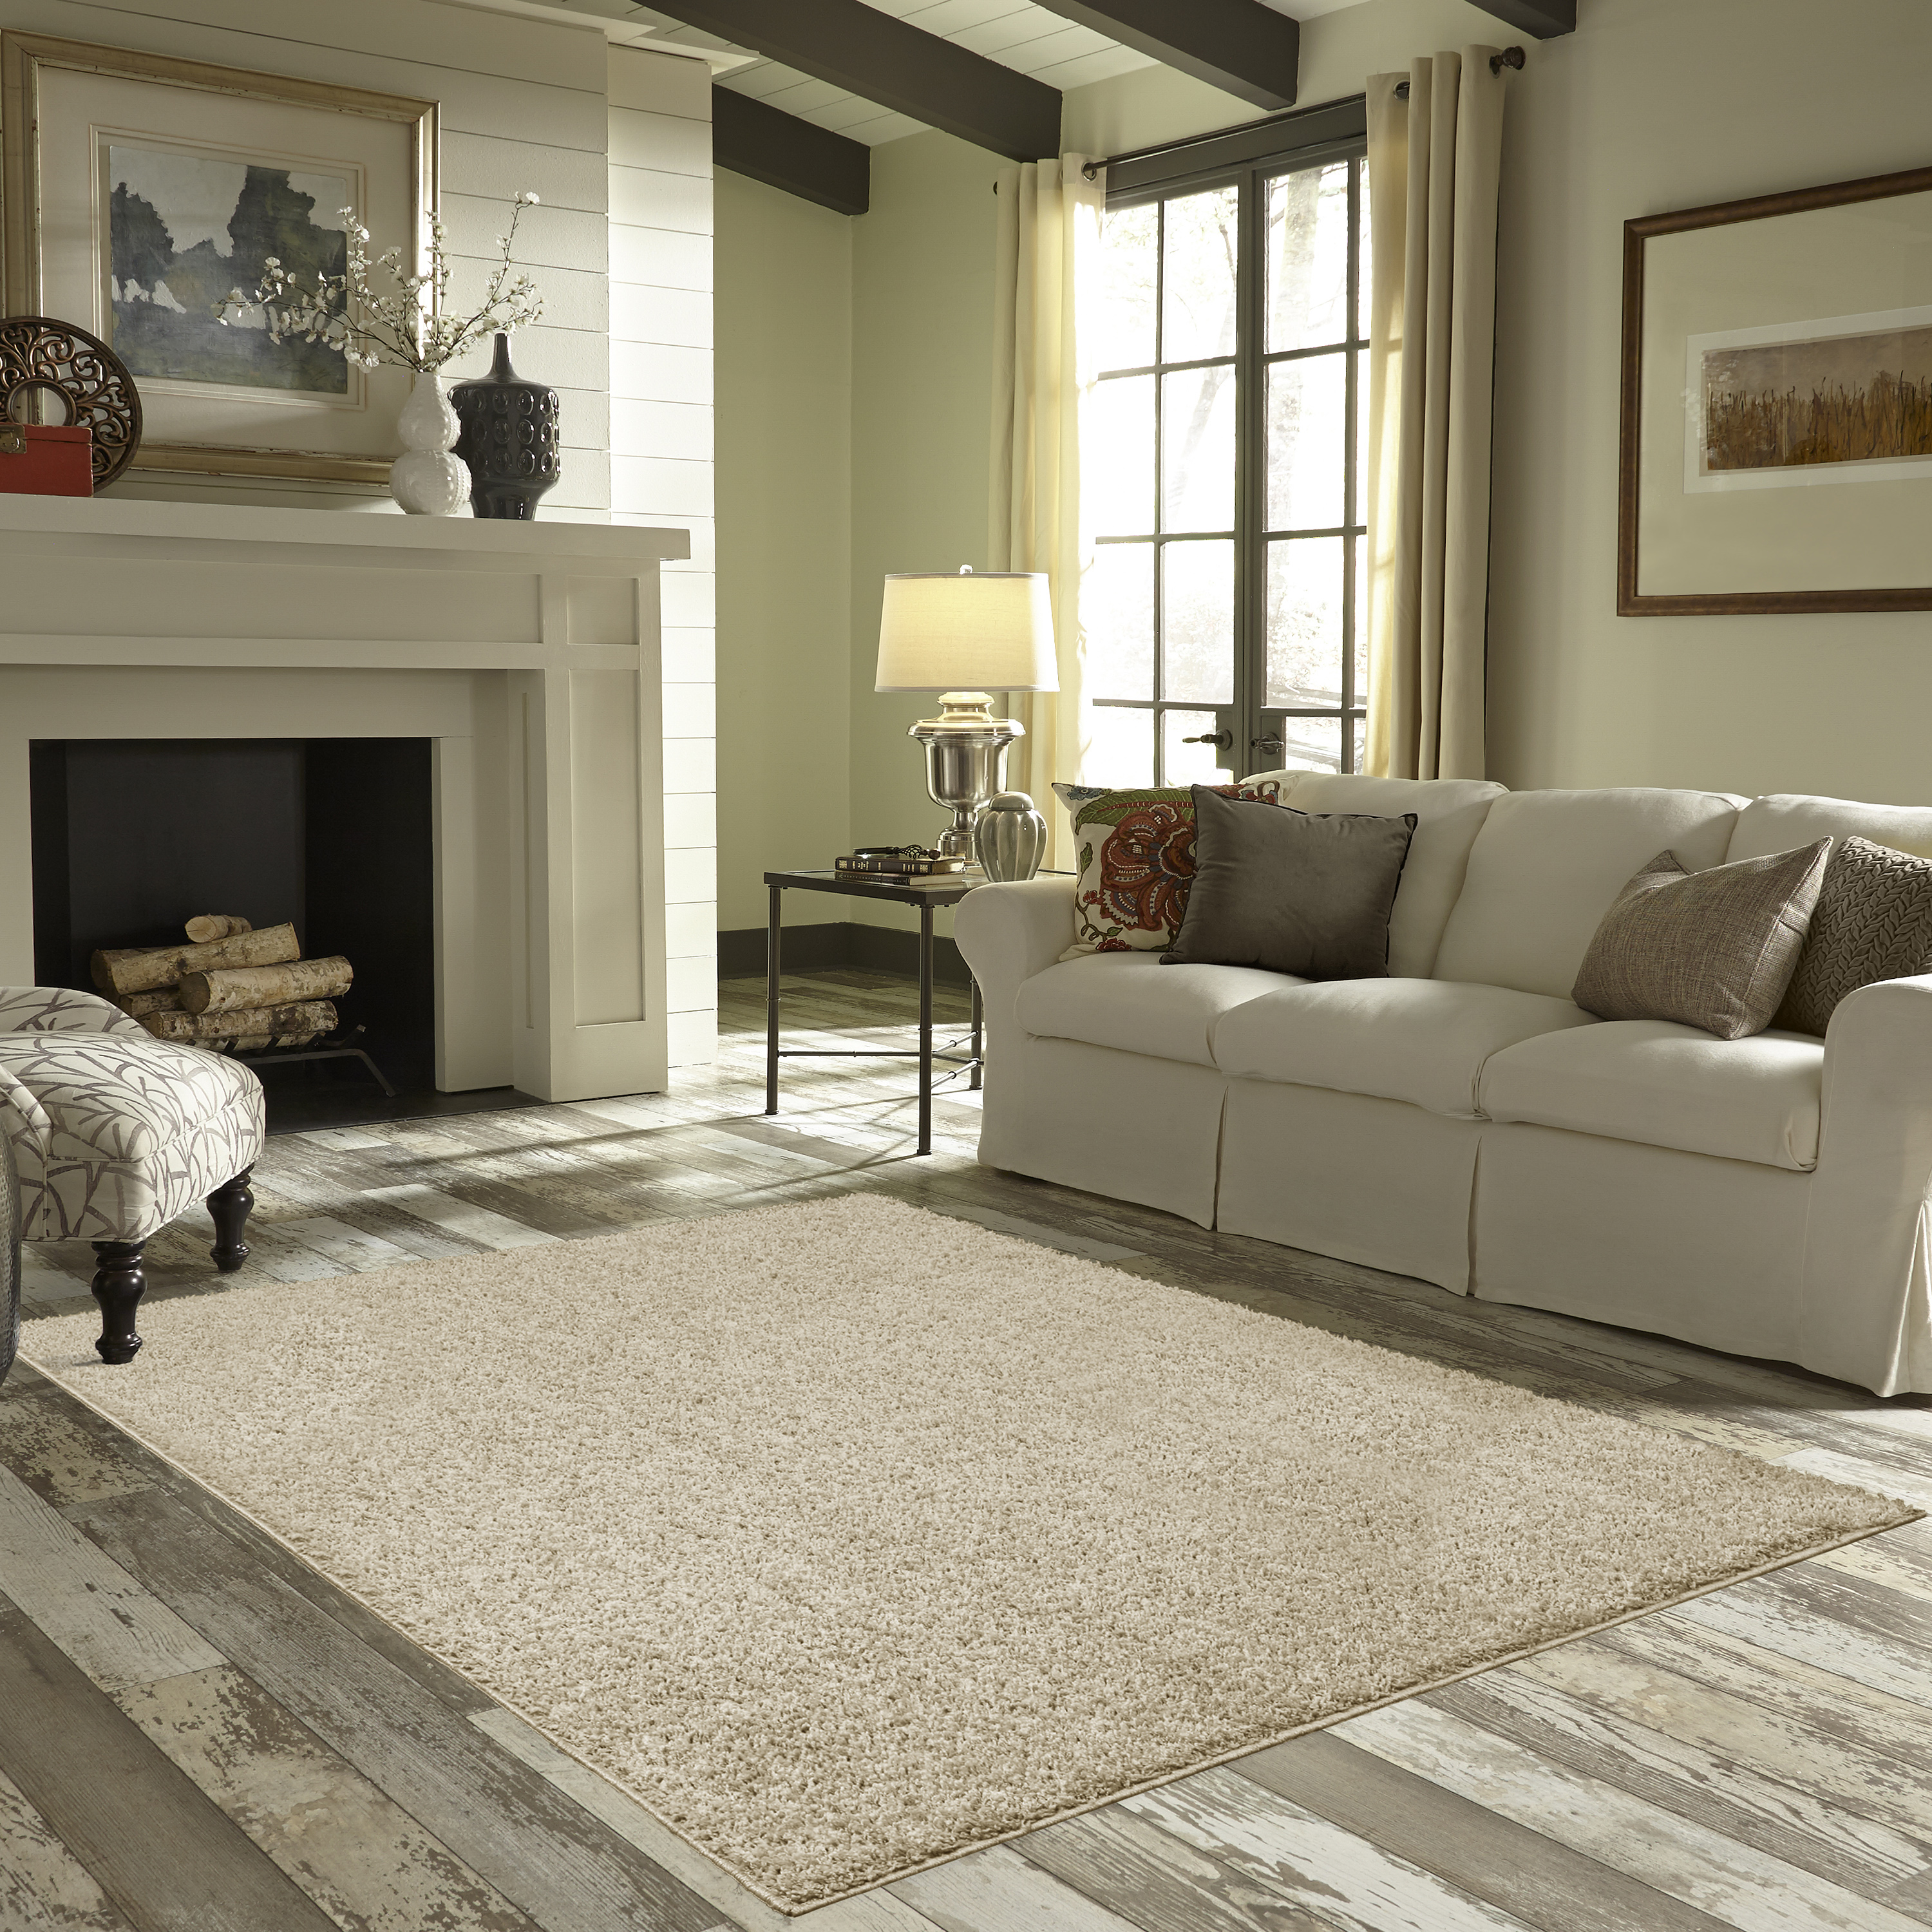 Great Mainstays Manchester Shag Area Rug Or Runner Image 1 Of 3